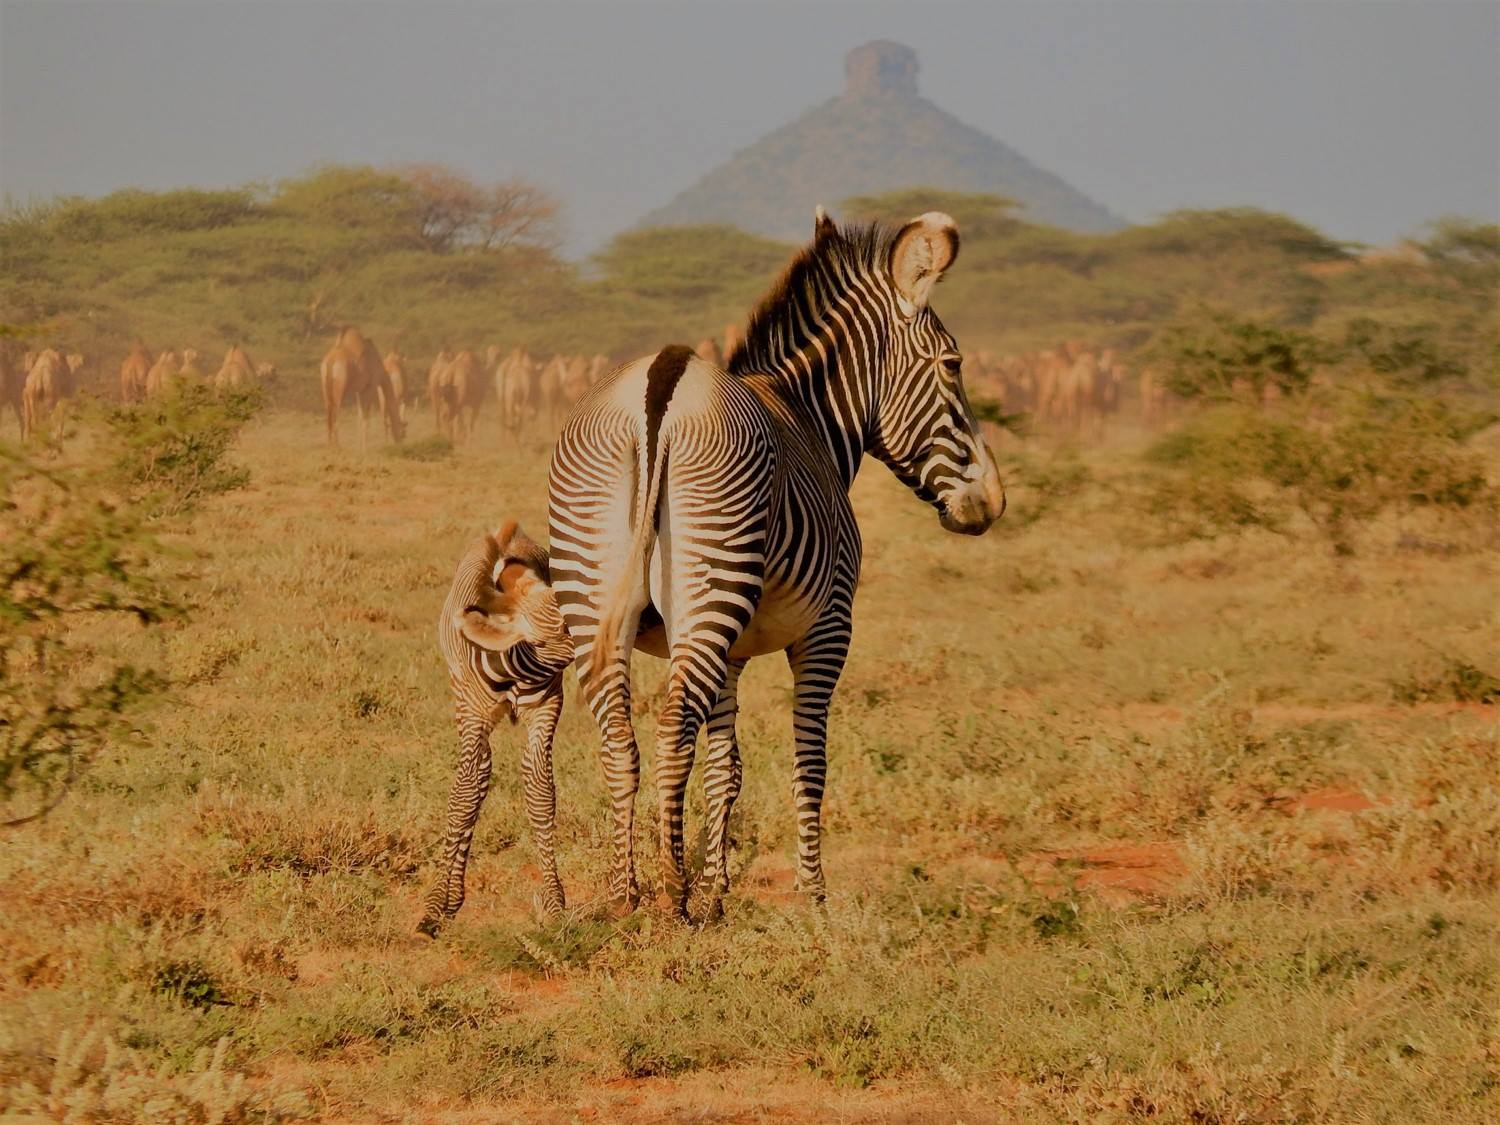 """Grevy's zebra foals and their protective mothers are inhabiting Naibelibeli plains in high numbers- over 20 very young foals were seen during a drive out to the plains yesterday morning. It is a testament to the good rains and plentiful pasture in Westgate Conservancy. The foals survival will be dependent on the onset of the rains in April, replenishing the diminishing pasture and water resources that are subject to increasing competition from livestock, wildlife and people as the dry season extends."" Image and caption courtesy of Grevy's Zebra Trust"